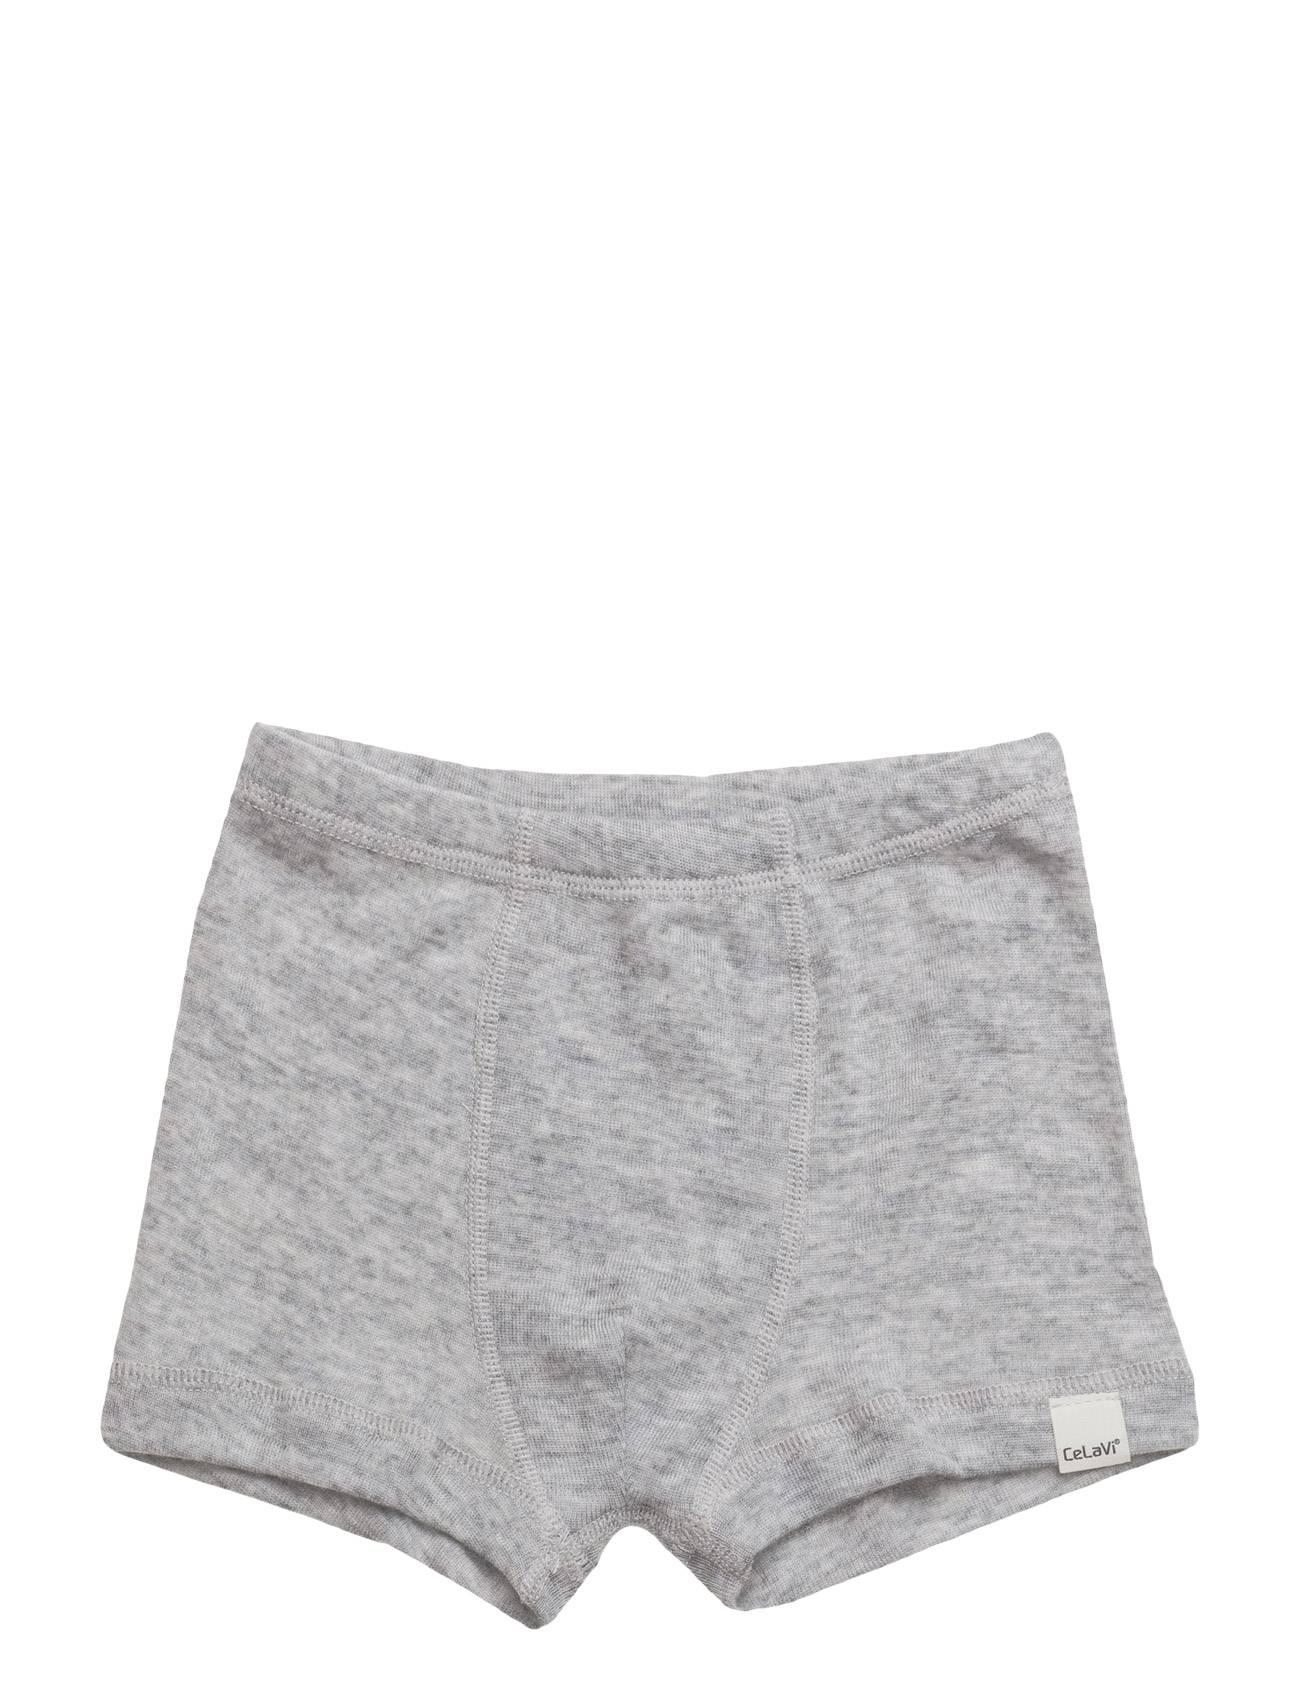 CeLaVi Boxer Shorts -Solid Wool